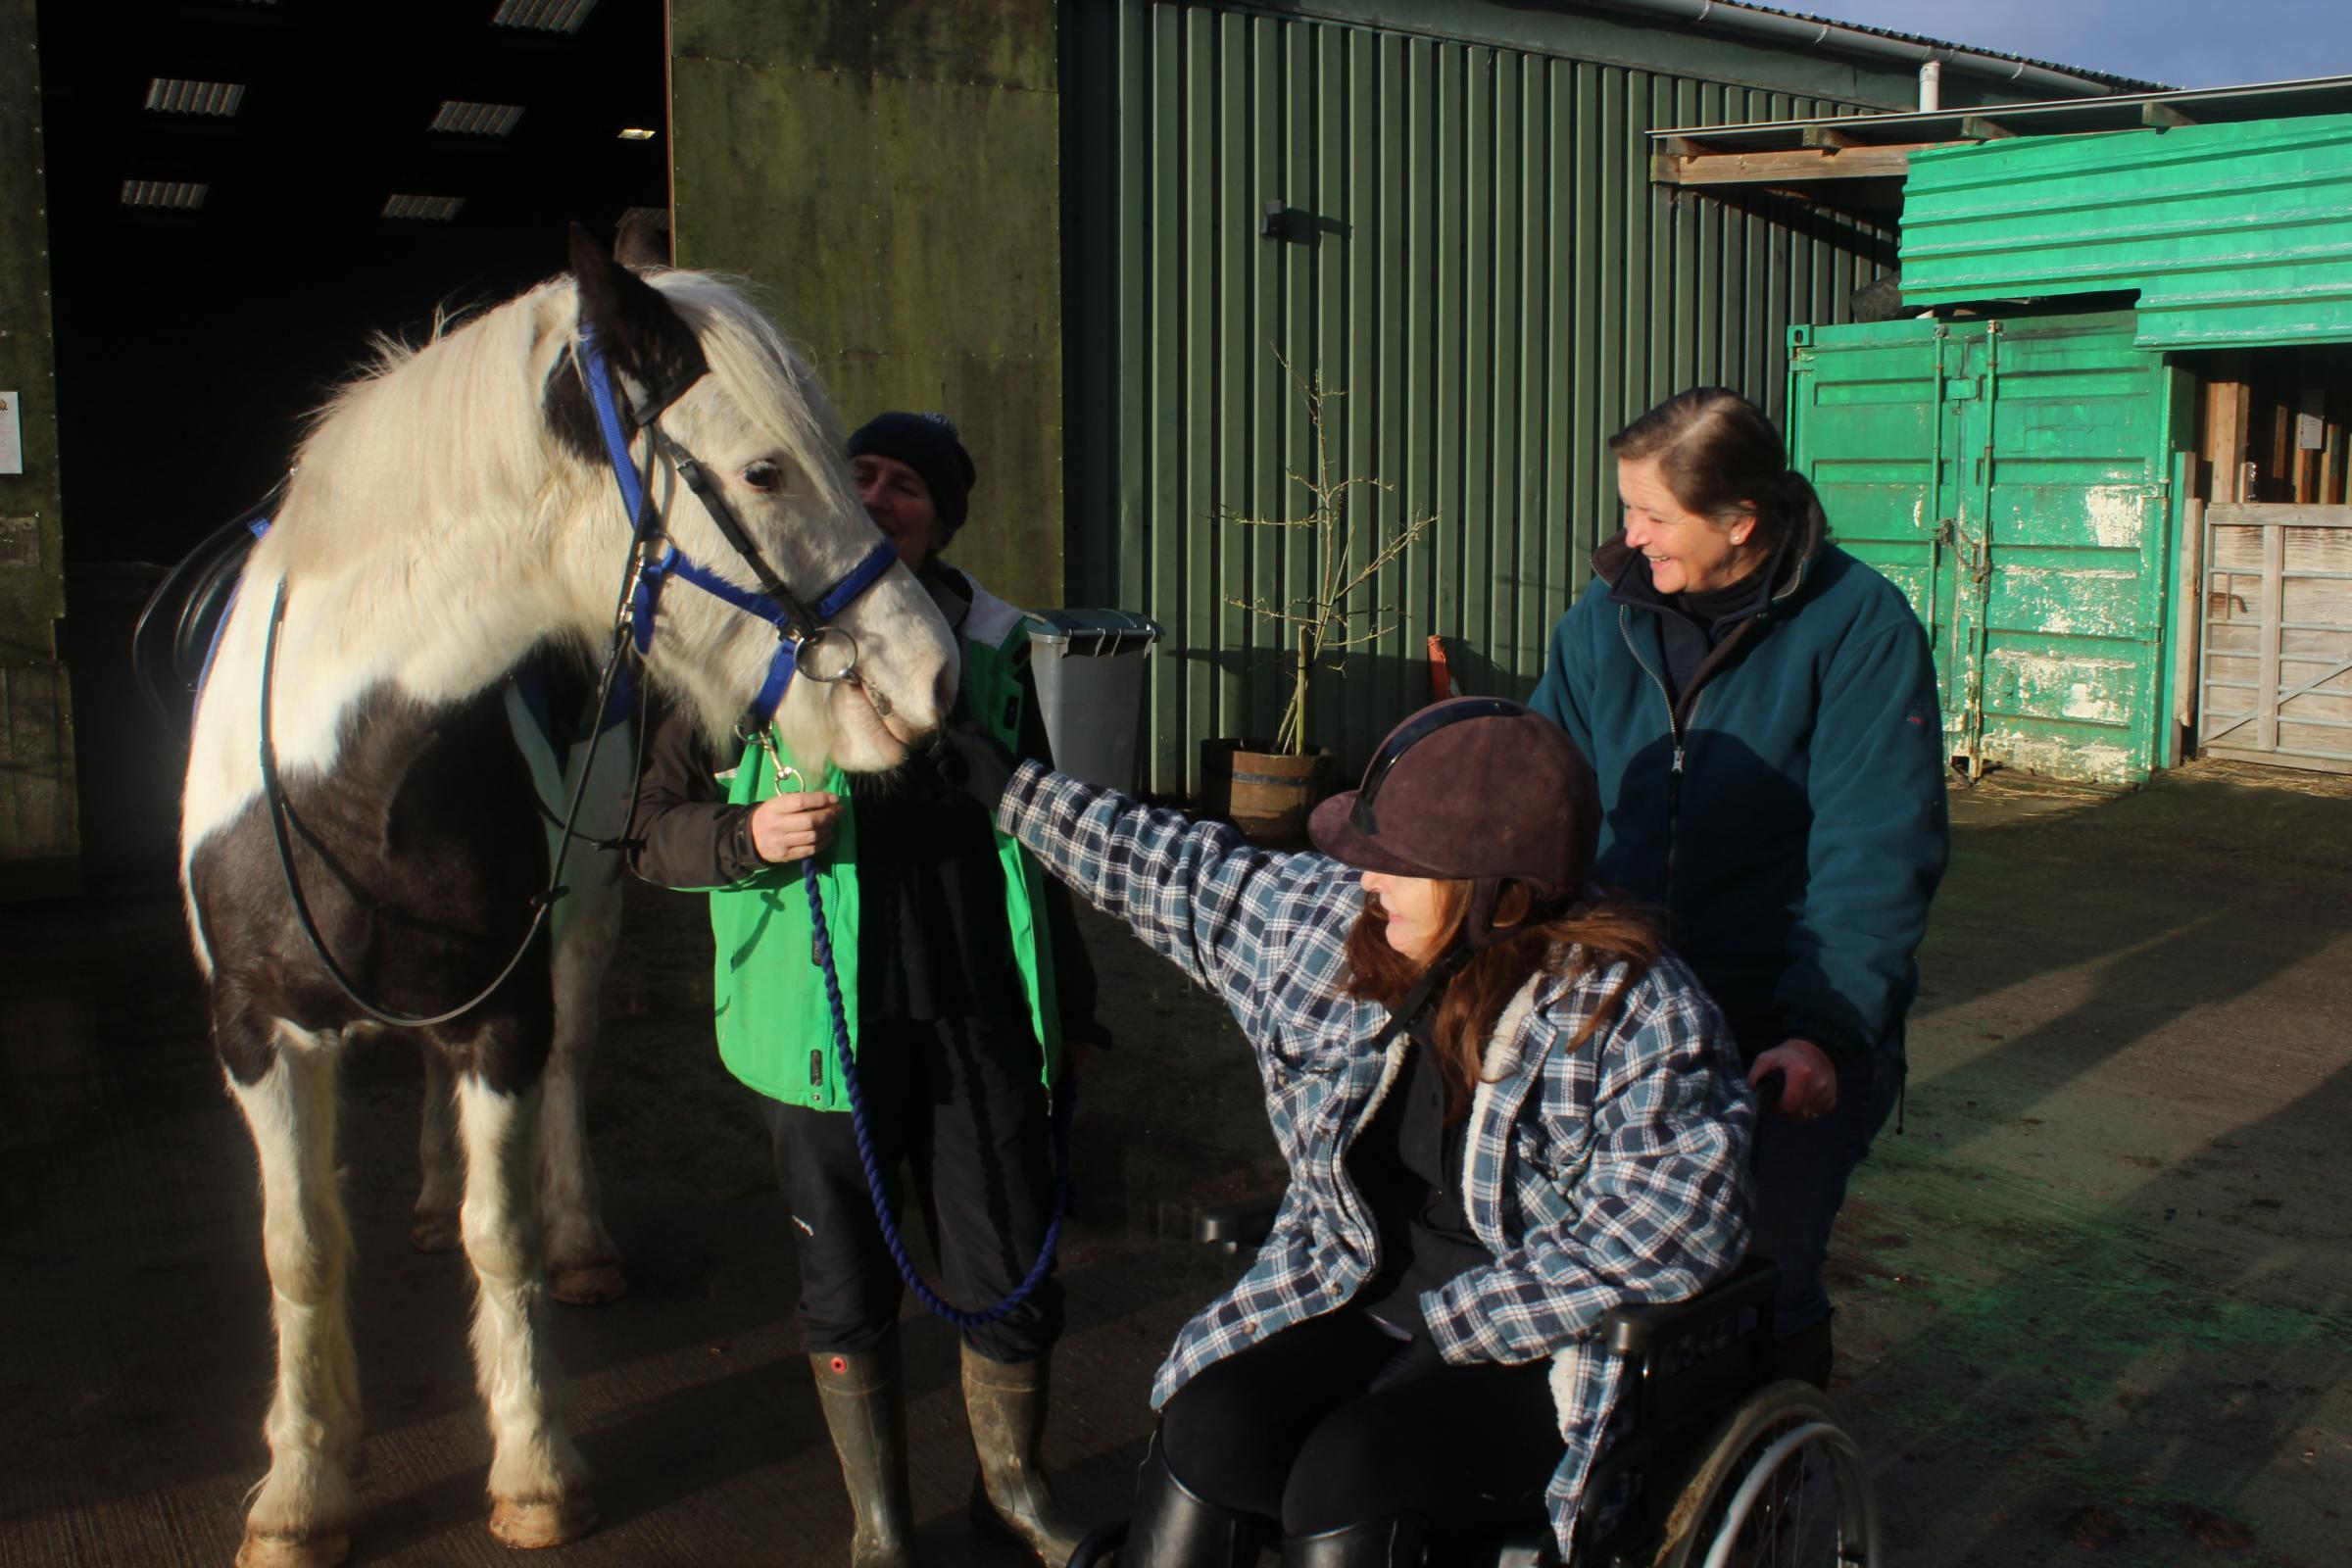 The Gareloch RDA group's efforts are highly praised by those who use the service